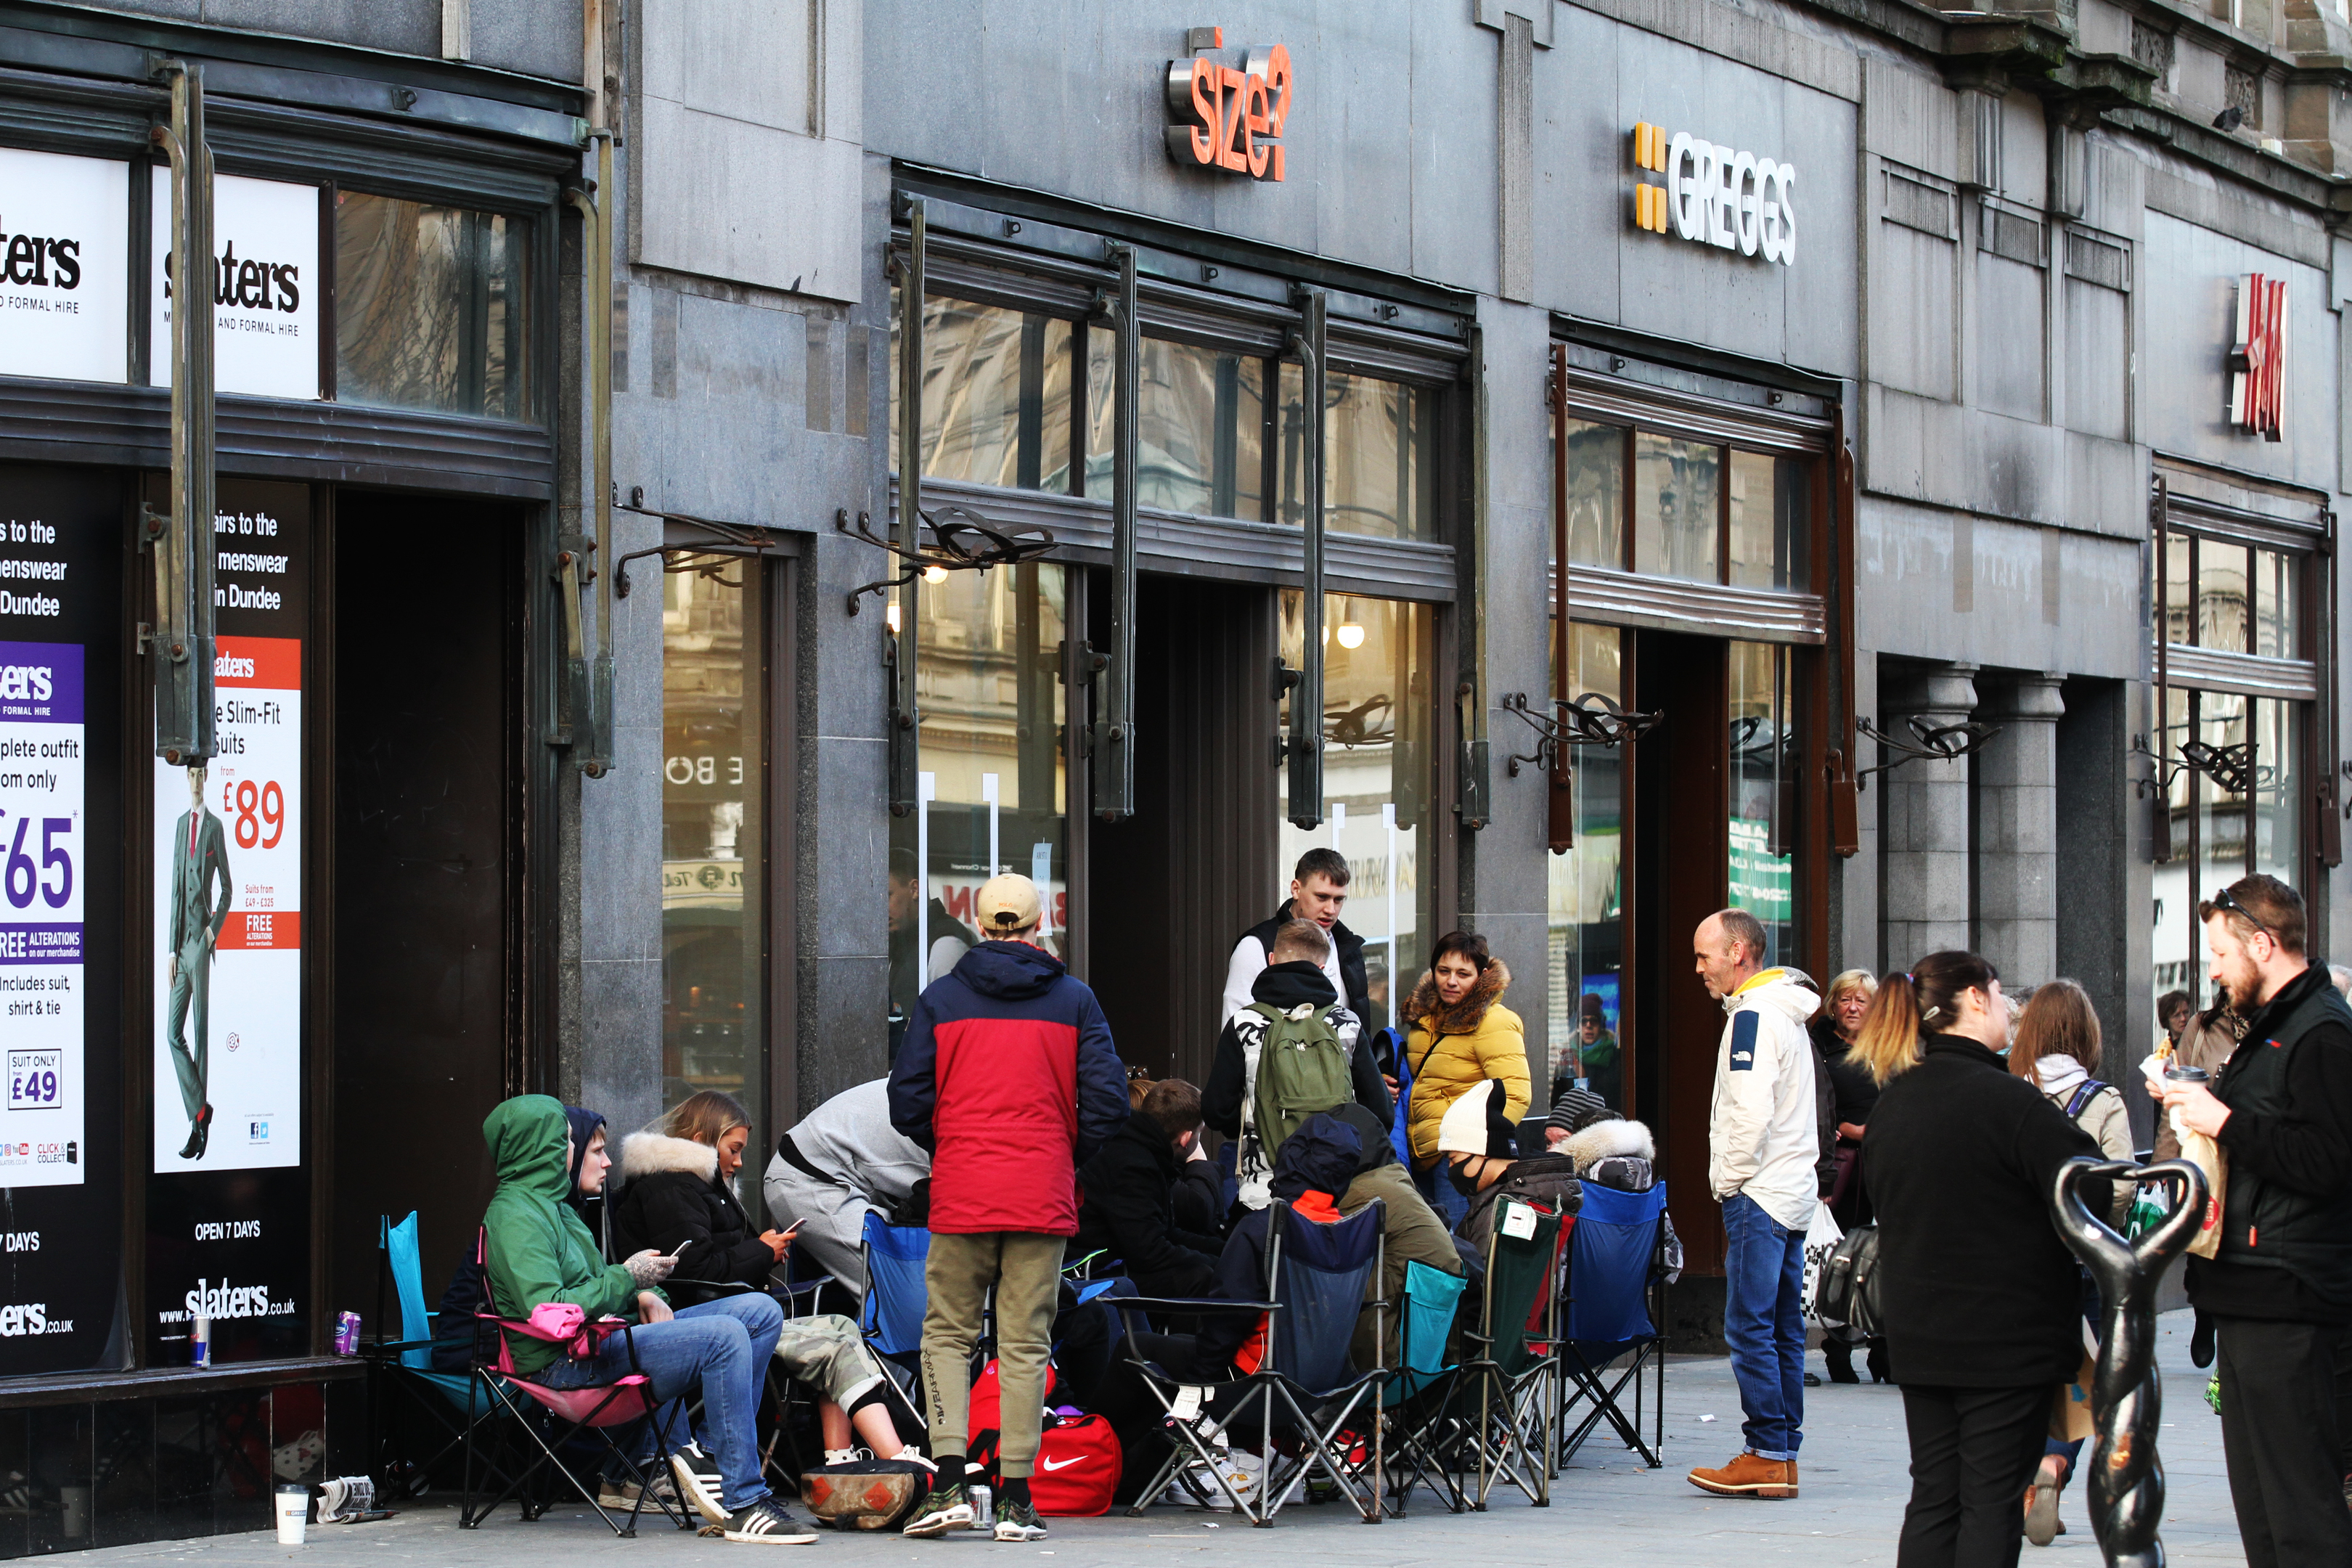 A queue of people on camping chairs is building outside Size? for a new pair of trainers which go on sale tomorrow.